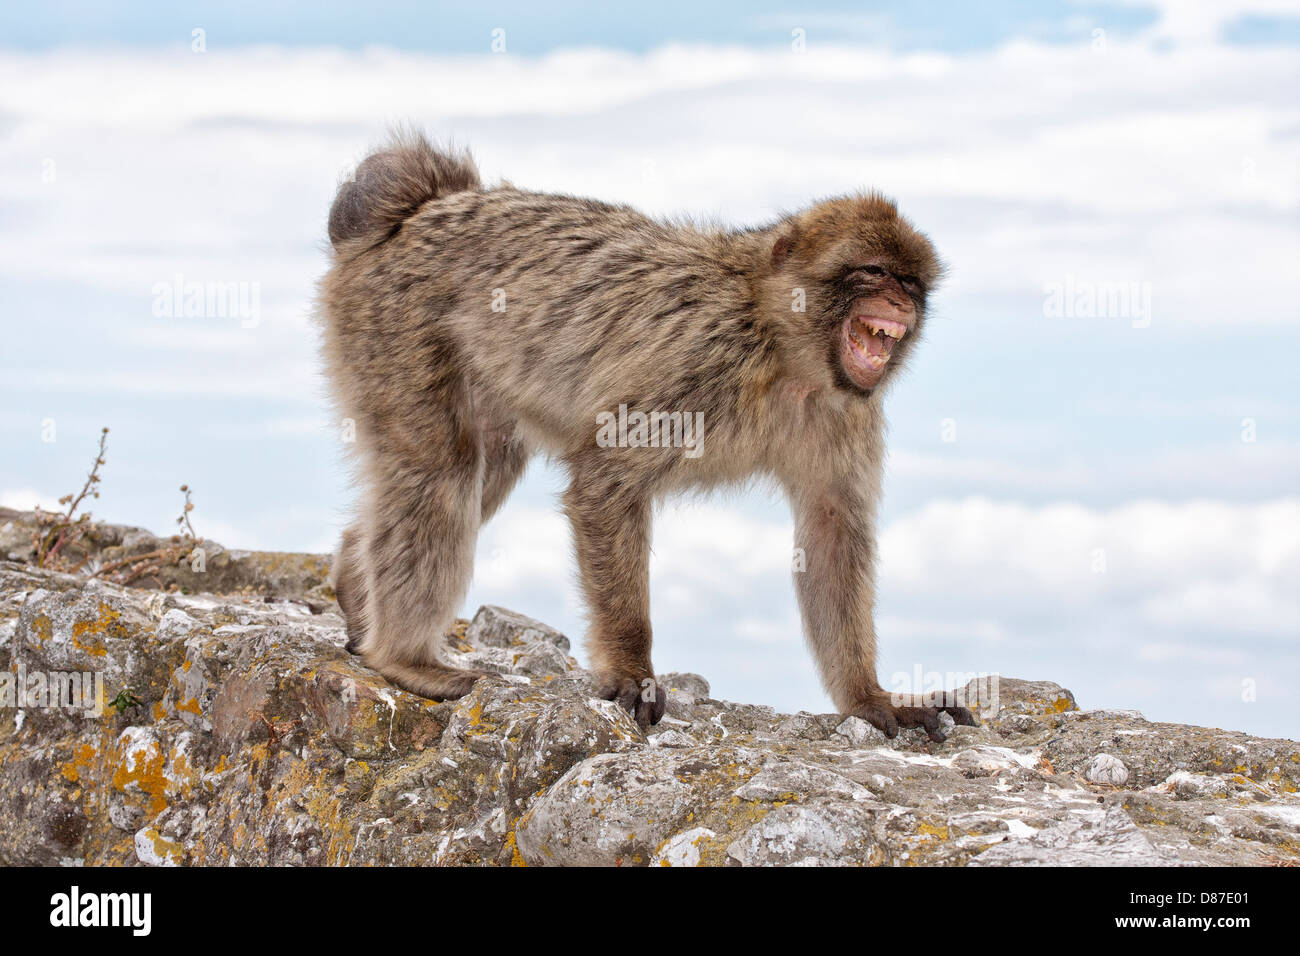 Breeding condition female Barbary Macaque - greeting grin - Stock Image